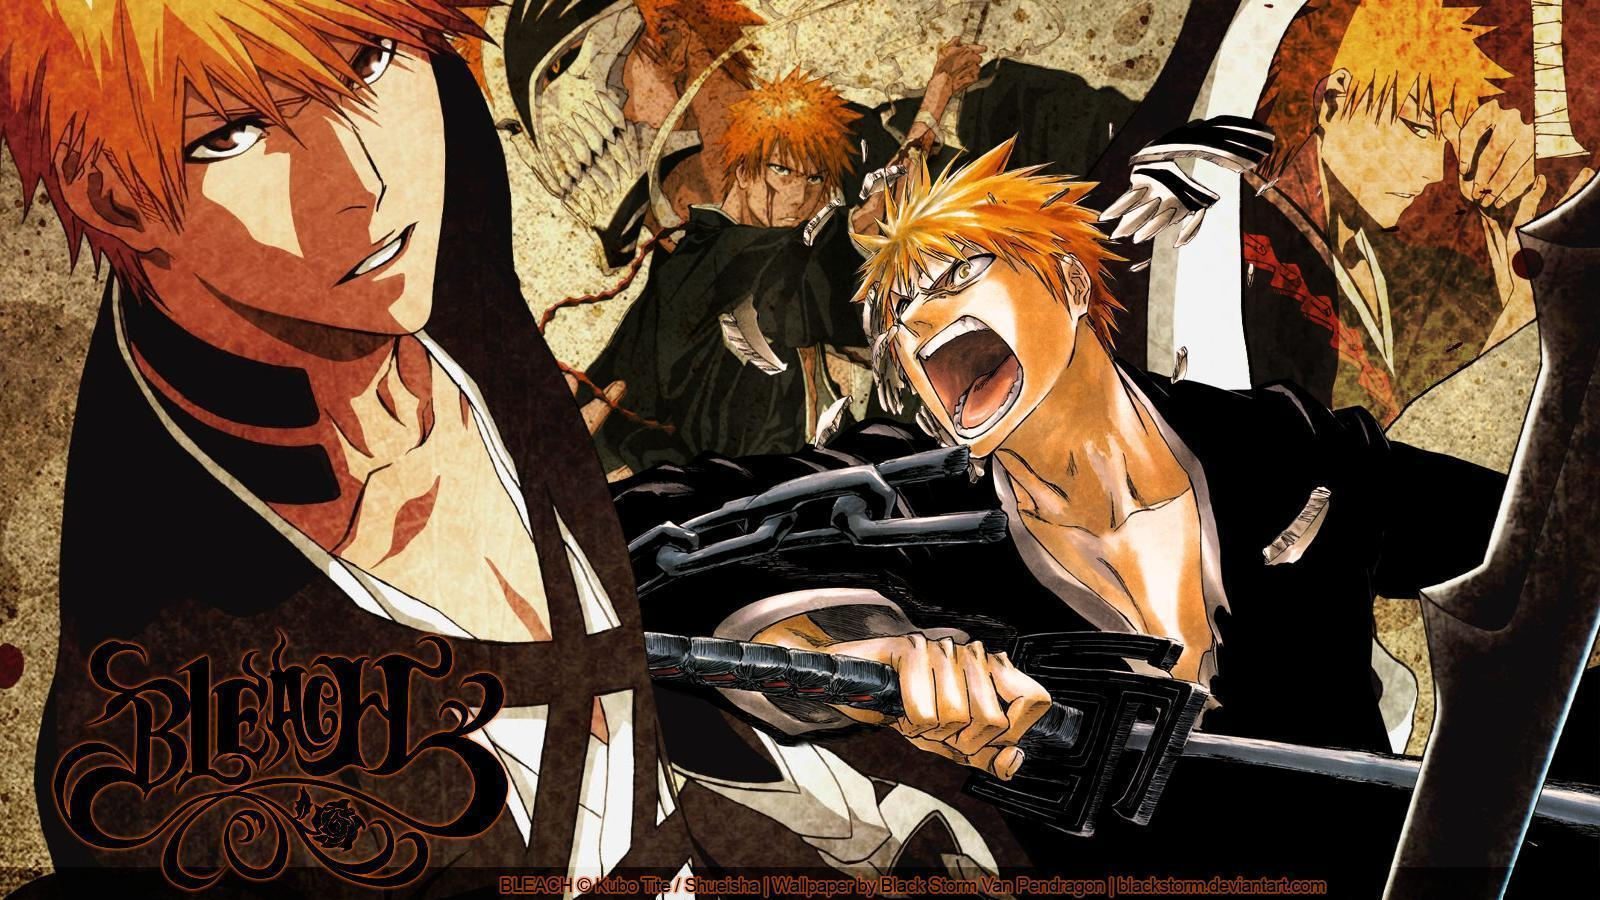 BLEACH: Kurosaki Ichigo wallpaper 01 by blackstorm on DeviantArt